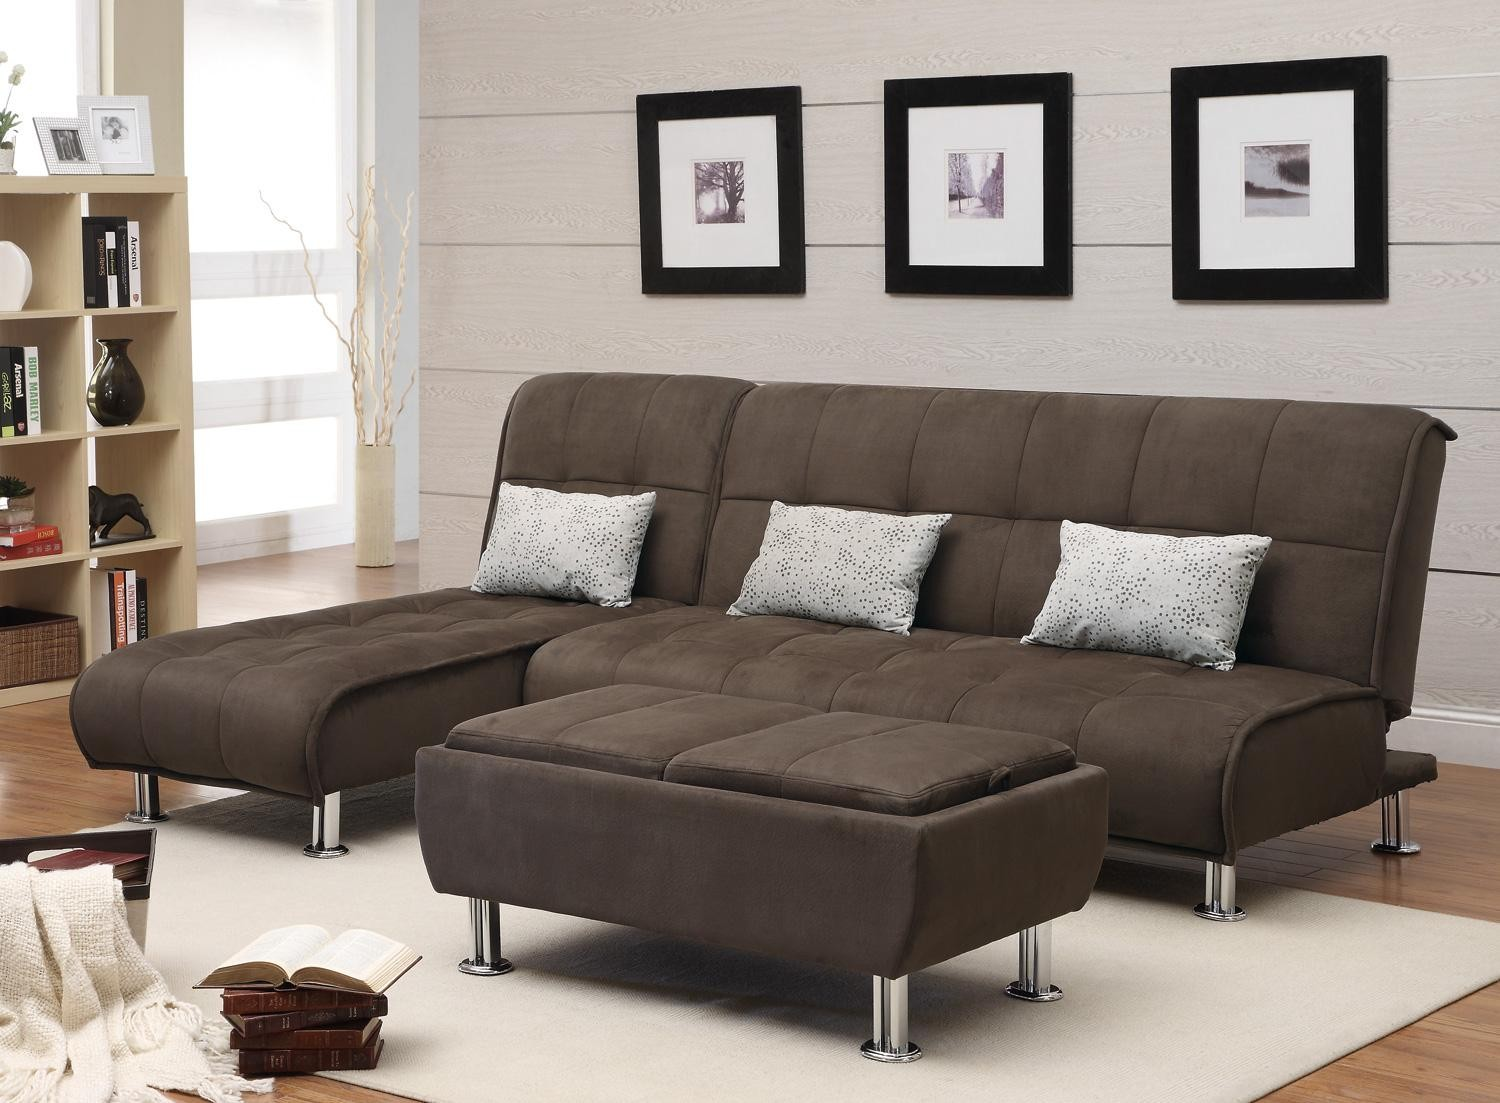 Most Comfortable Modern Sectionals Most Comfortable Sofas Homesfeed